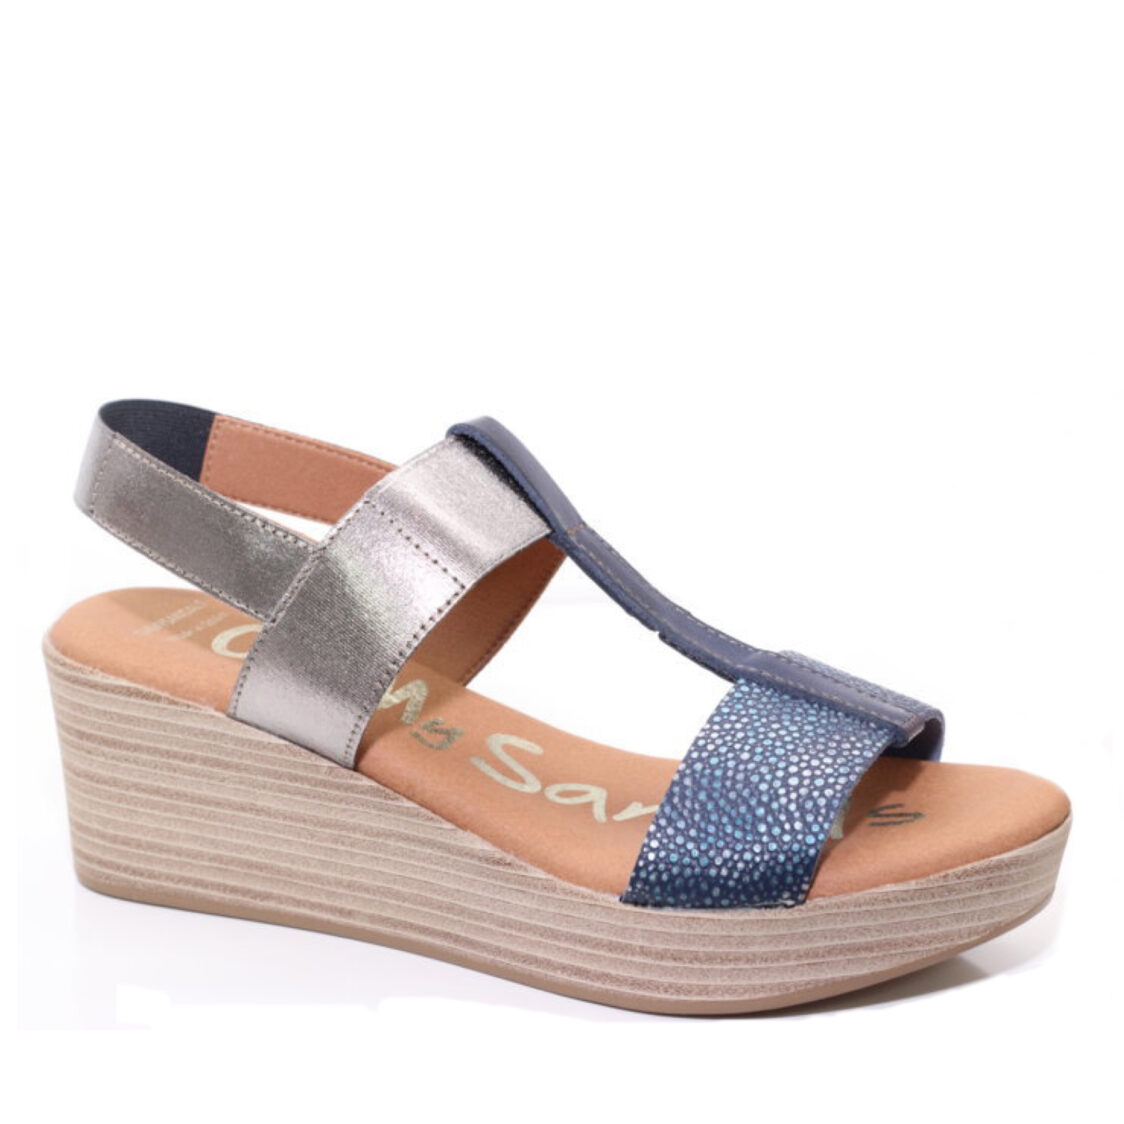 OH MY SANDALS Wedge 2 Navy